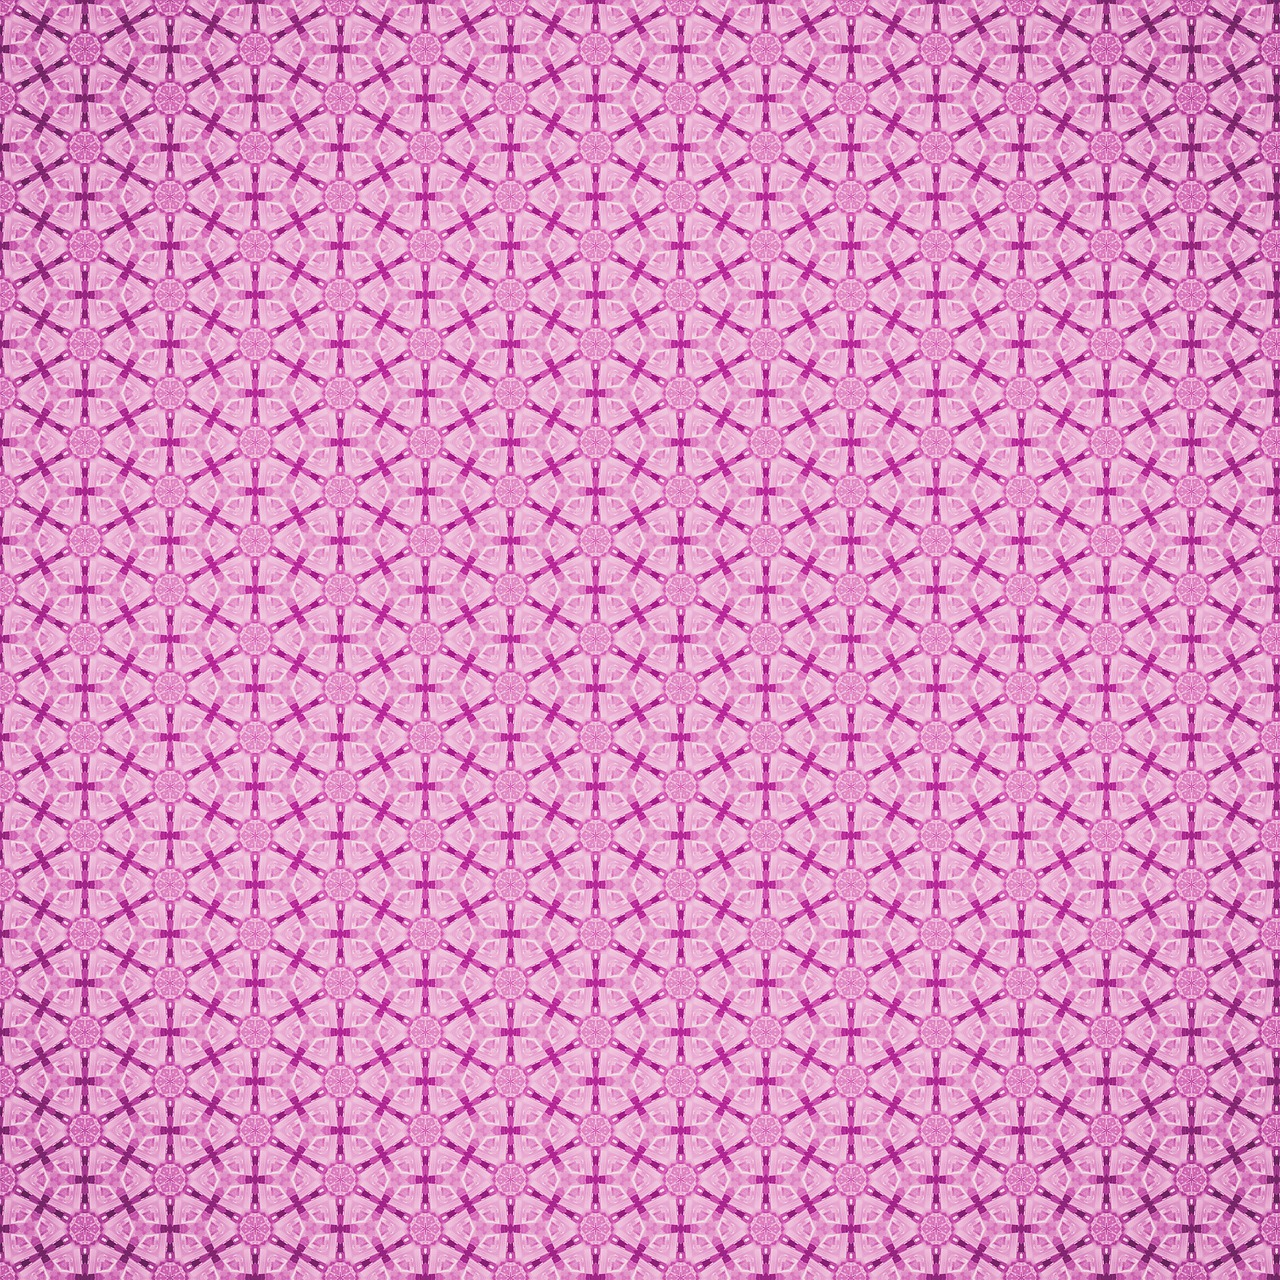 texture,background,pattern,structure,backgrounds,abstract,designer,design,graphic design,tools,design element,element,web design,layout,pink,children,girl,snowflake,free pictures, free photos, free images, royalty free, free illustrations, public domain